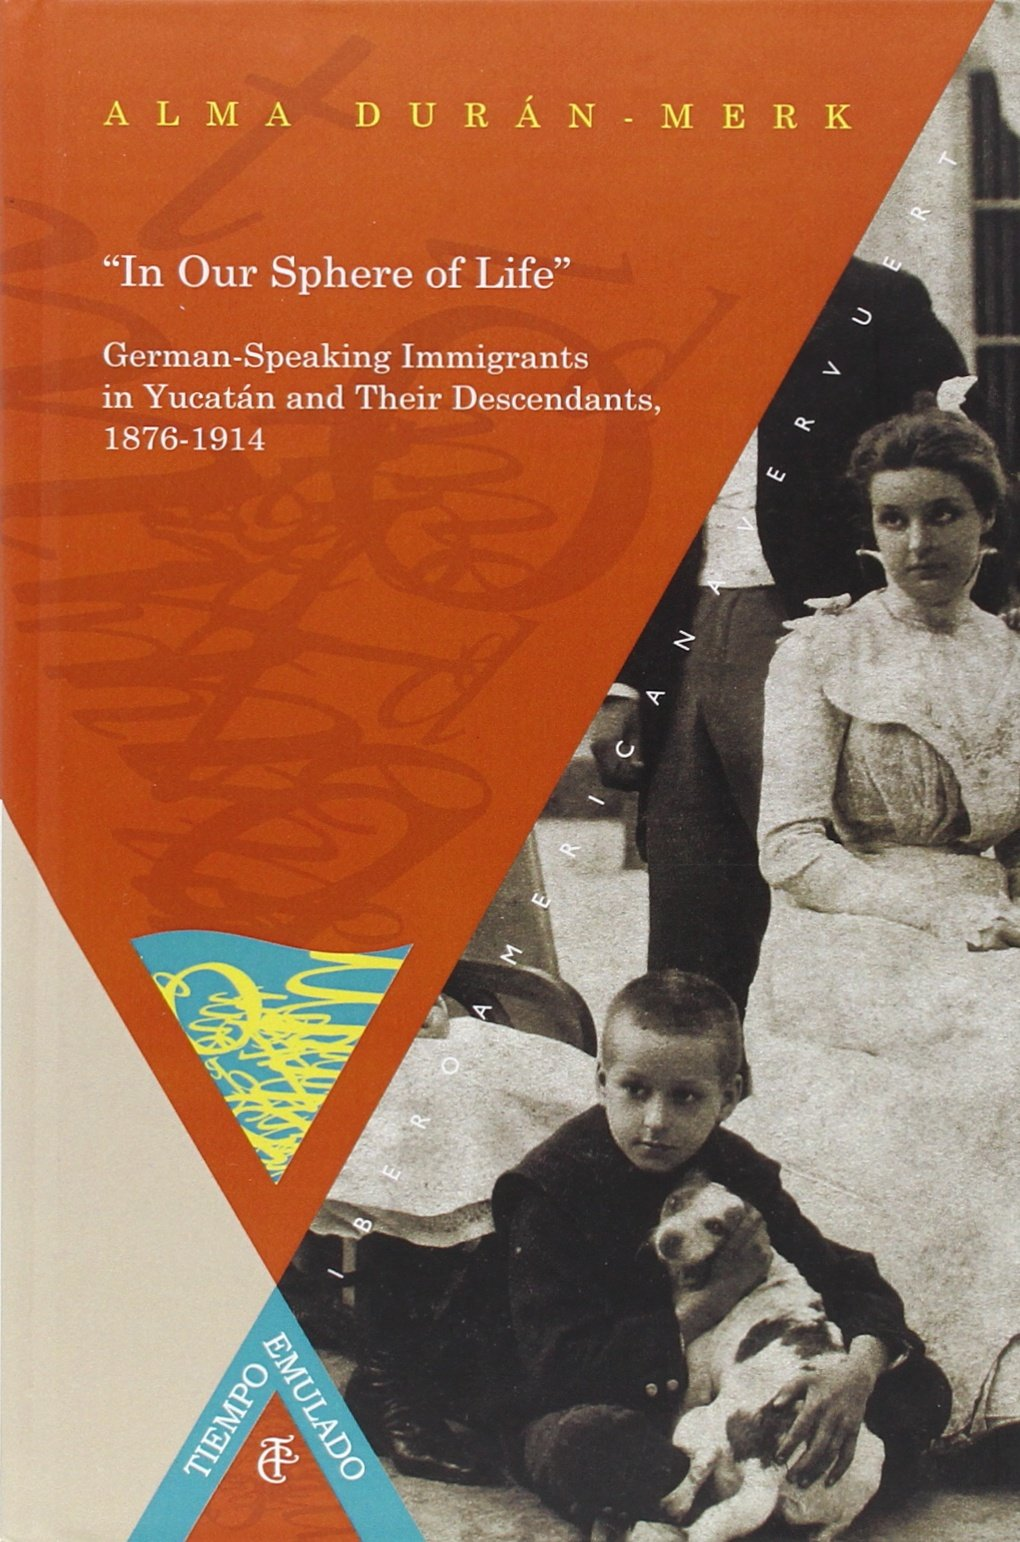 In Our Sphere of Life German Speaking Immigrants in Yucatán and Their Descendants, 1876-1914. (Spanish Edition): Alma Durán-Merk: 9788484898788: Amazon.com: ...